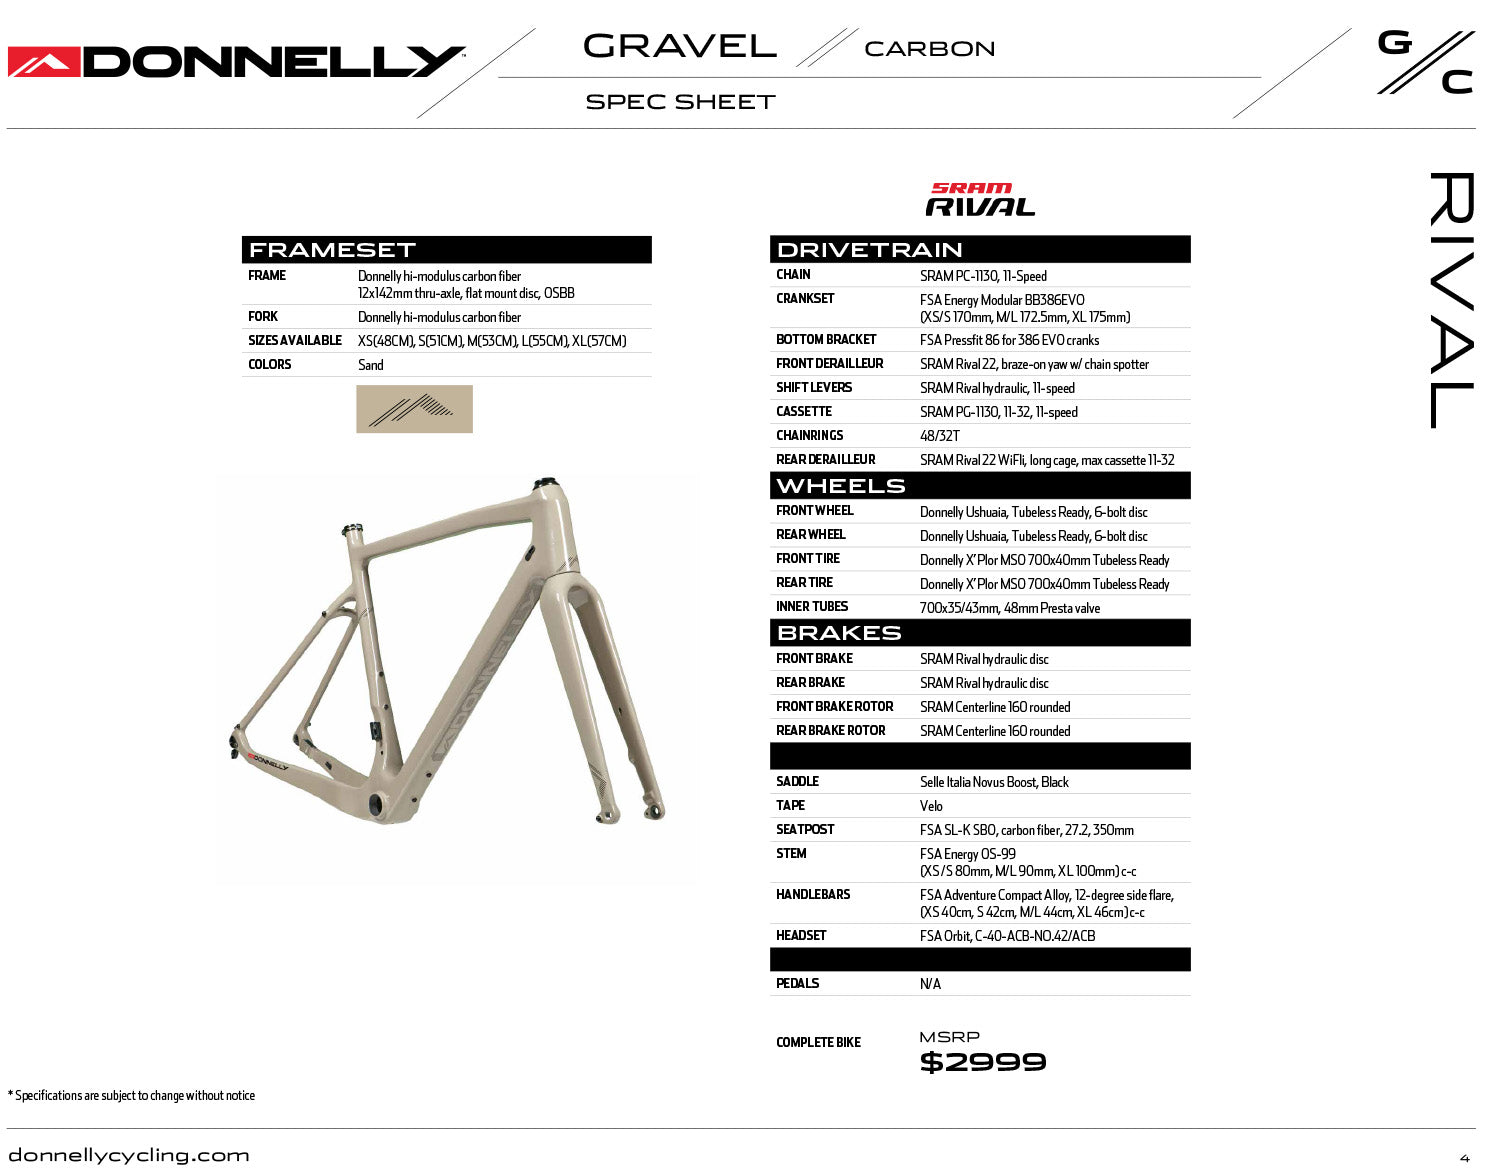 Donnelly G//C Gravel Carbon gravel bike